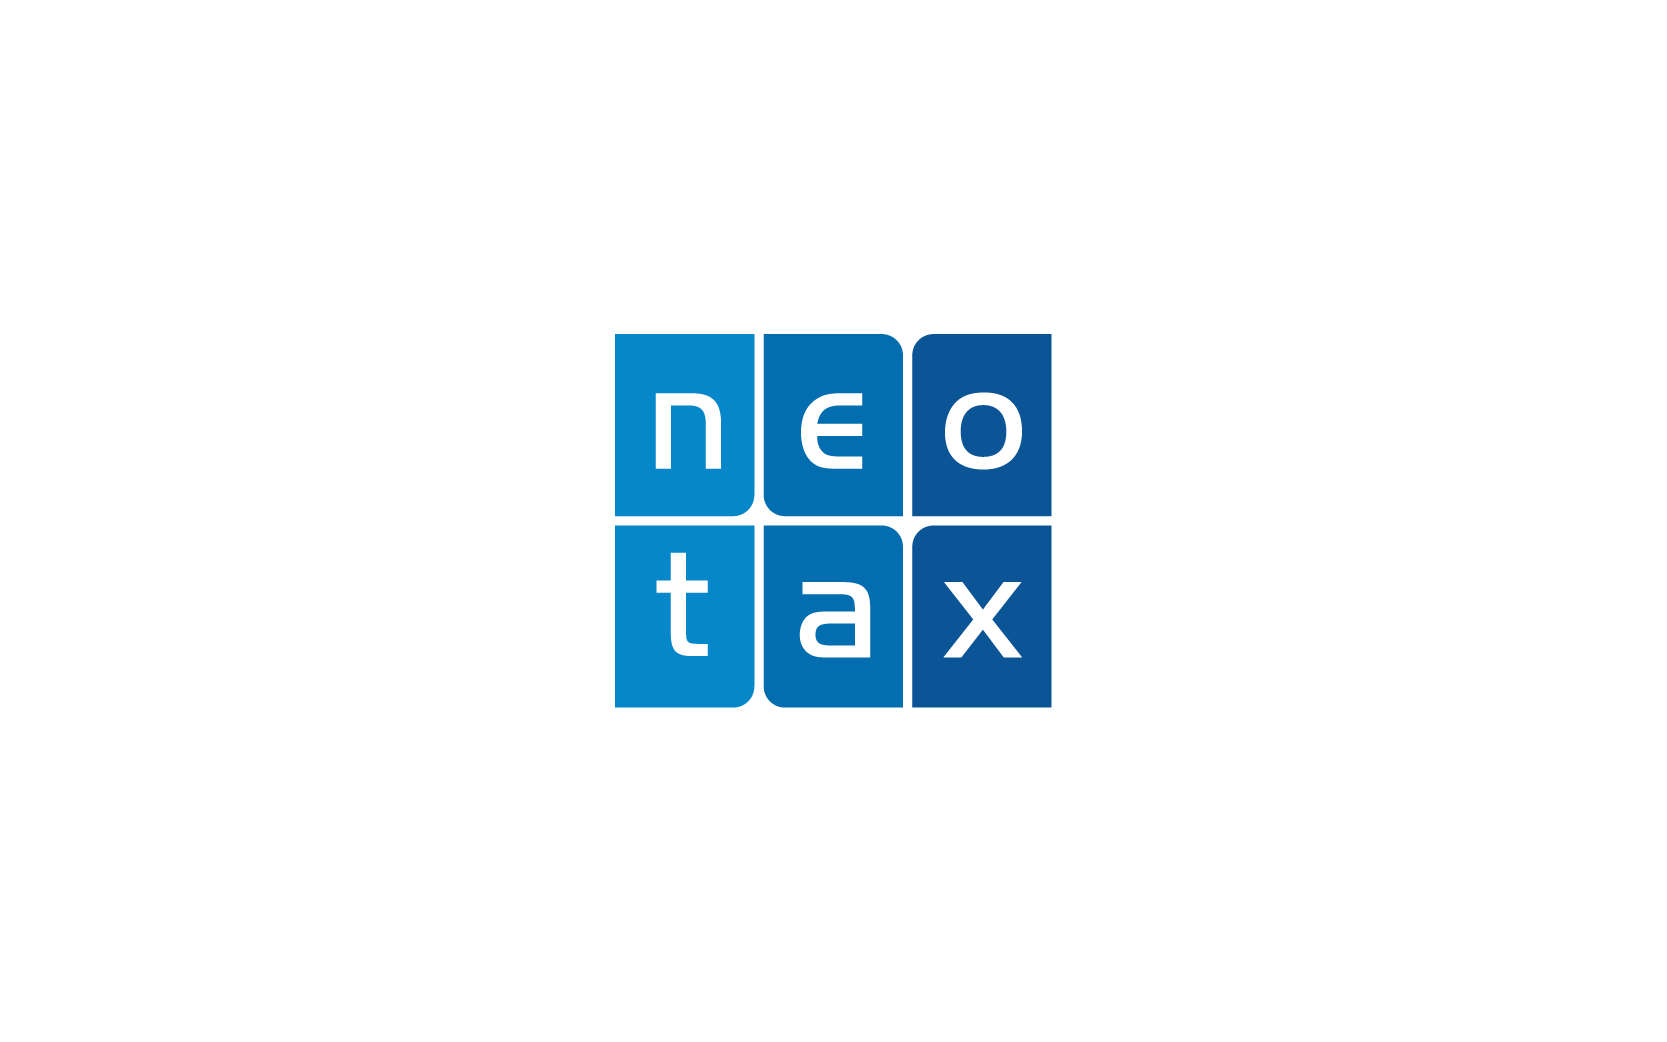 j+design-logo-design-neo-tax